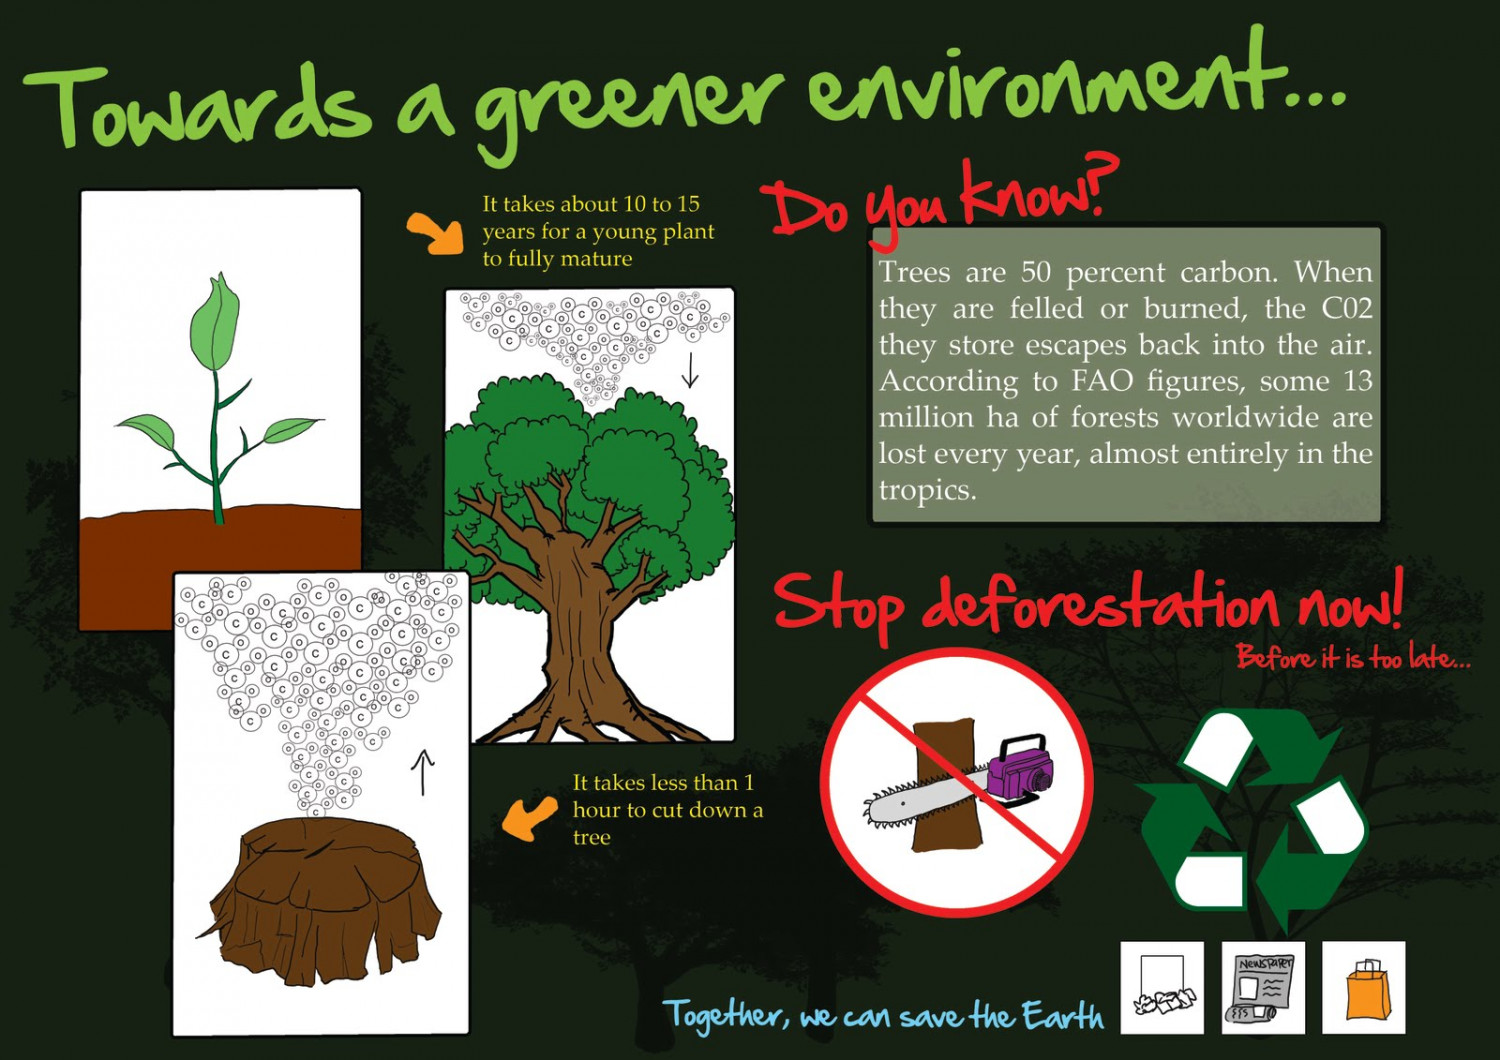 Towards a Greener Environment Infographic